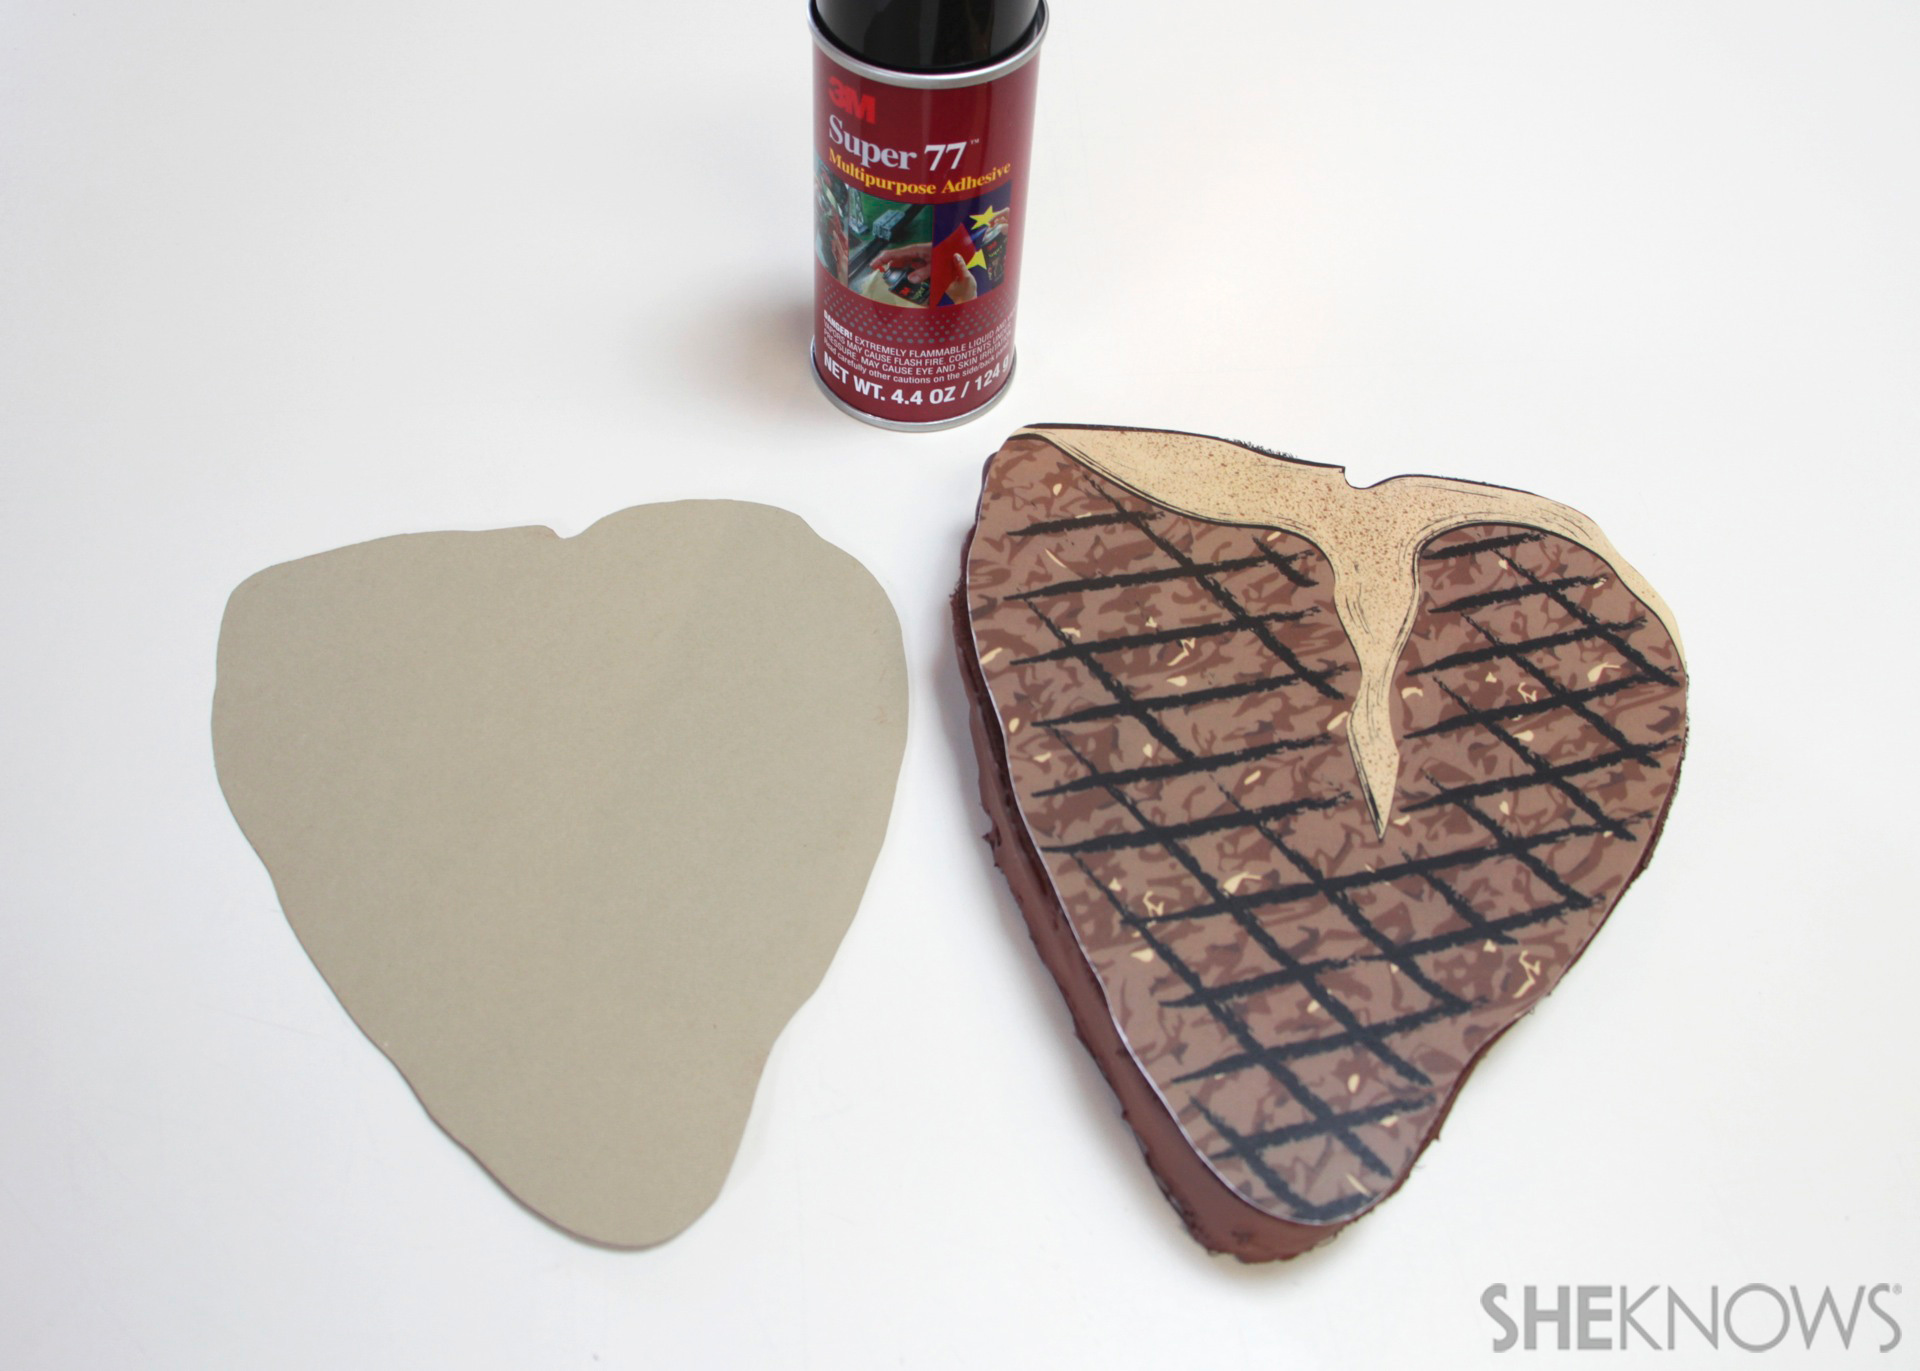 Father's Day gift idea: DIY mailable steak